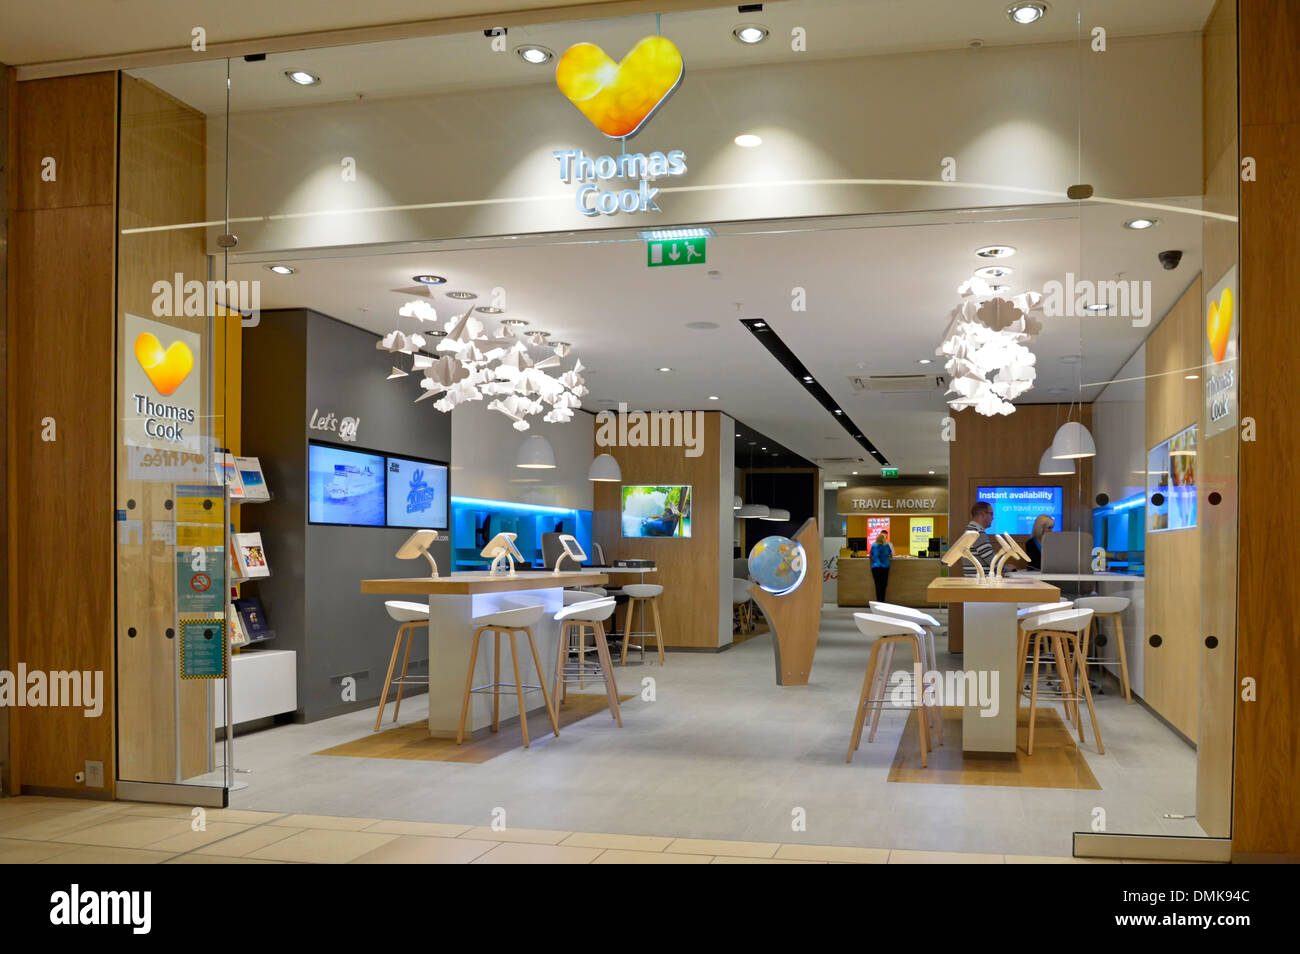 Thomas cook travel agents premises at indoor shopping mall for Travel agency office interior design ideas